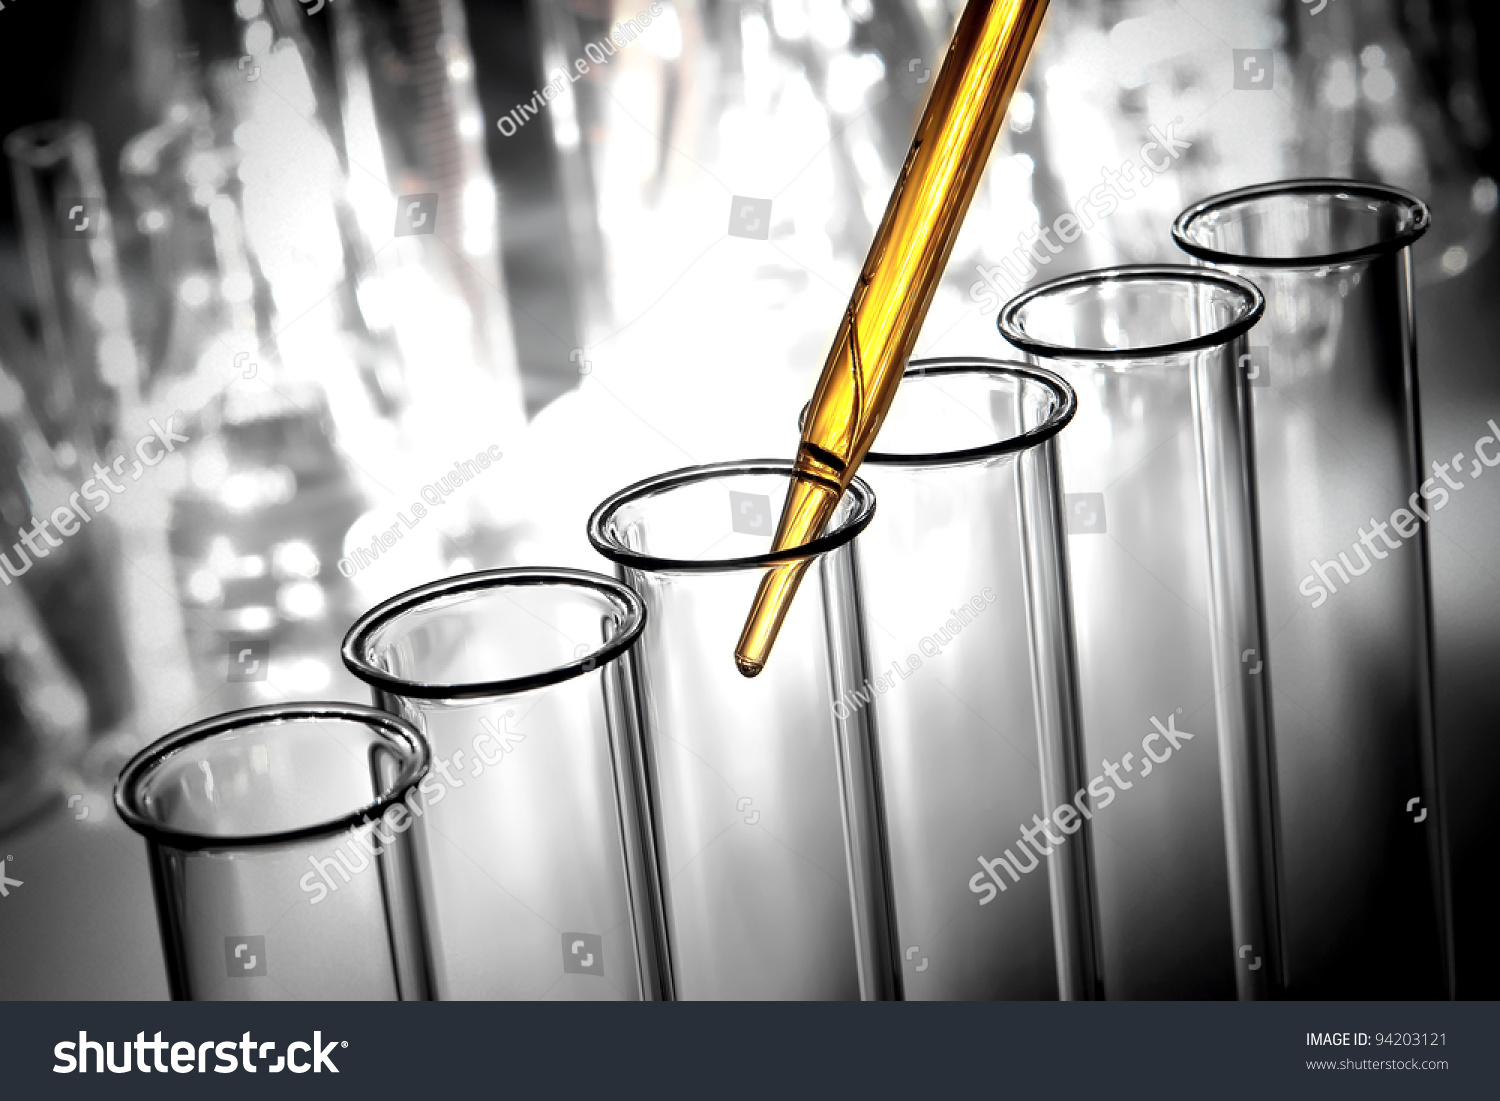 A lab experiment to test the different concentrations of a chemical solution